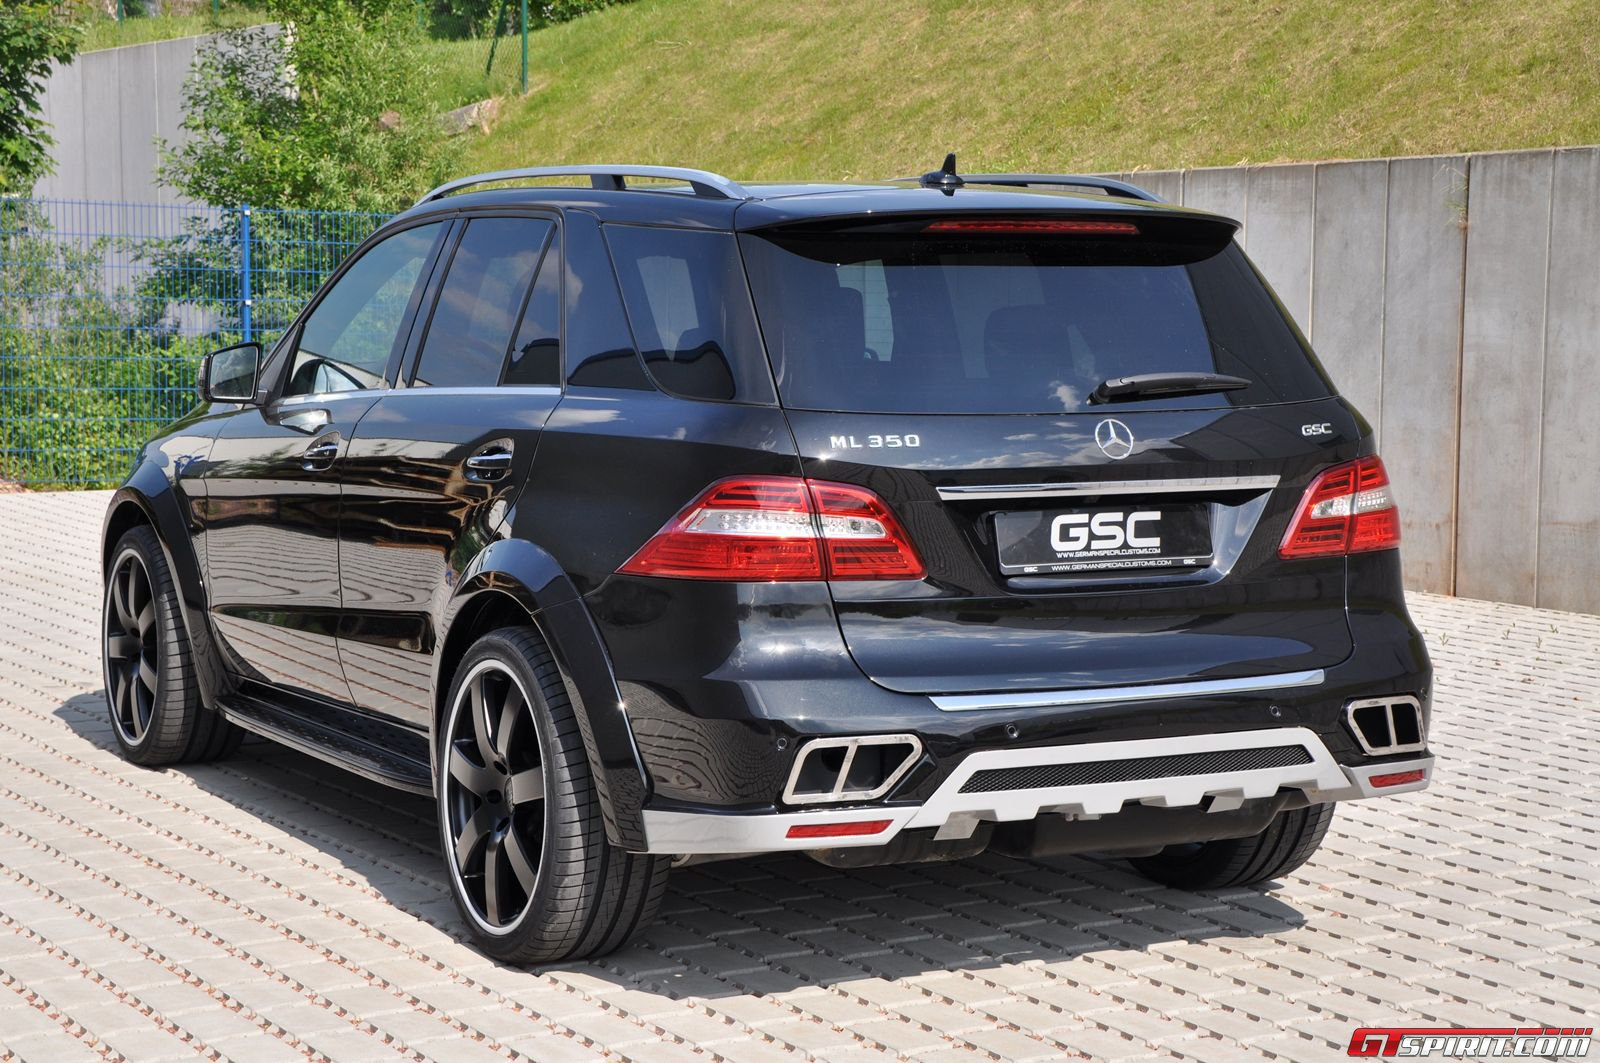 official  german special customs wide body kit for mercedes-benz ml-class